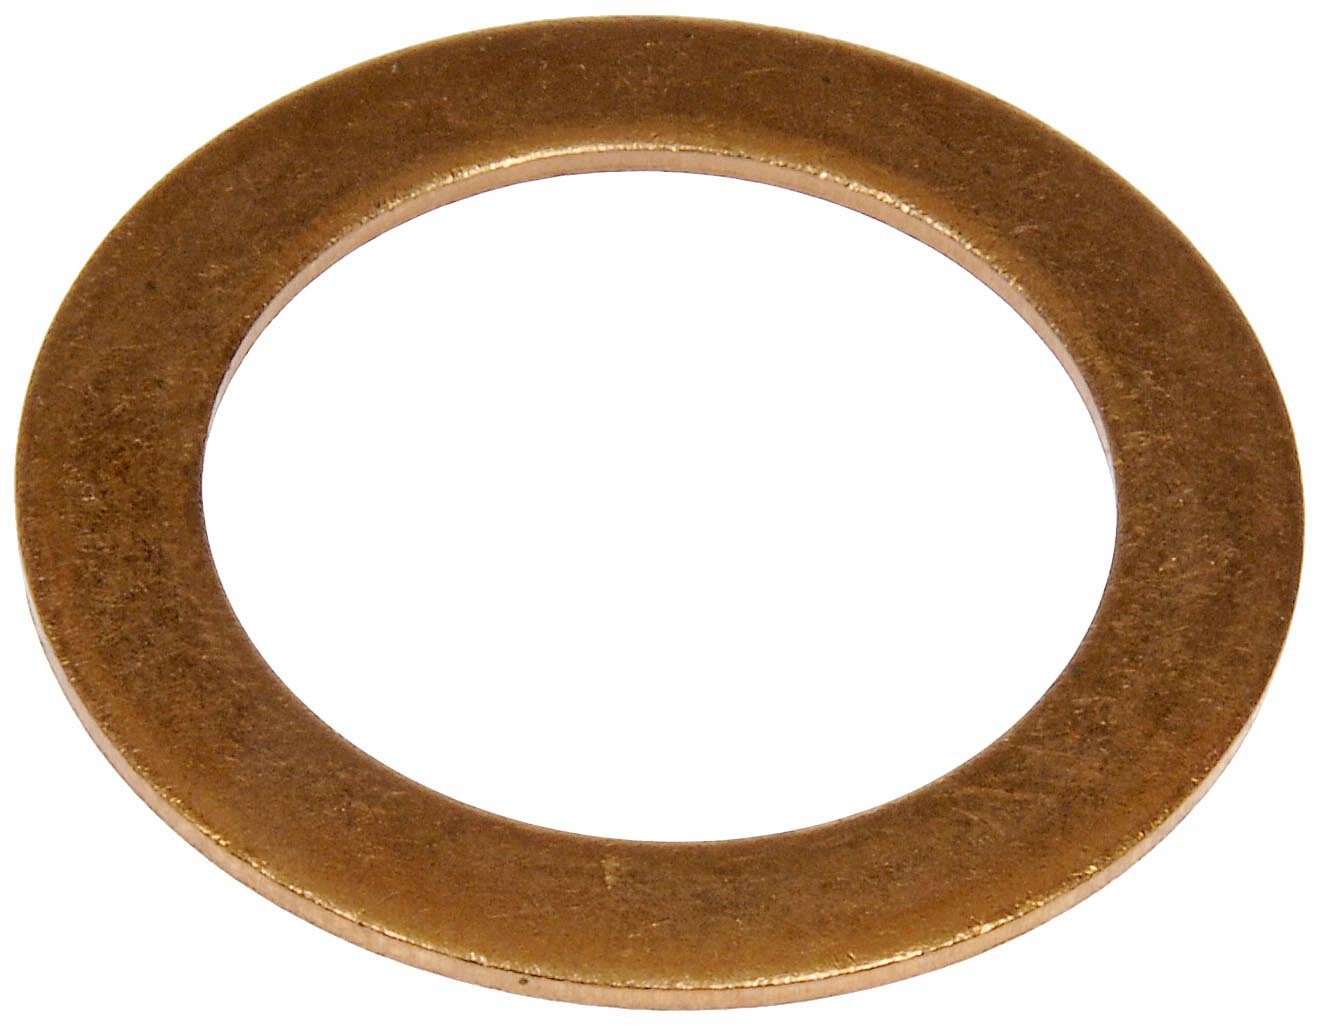 Dorman 095-026 Copper Oil Drain Plug Gasket, Pack of 10 Dorman - Autograde